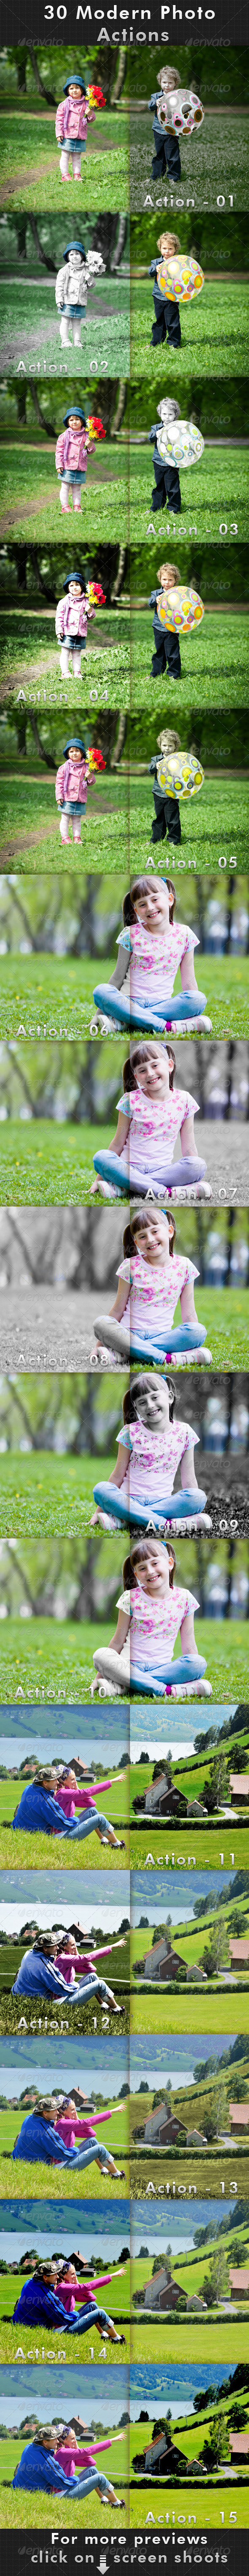 GraphicRiver 30 Modern Photo Actions 7227723